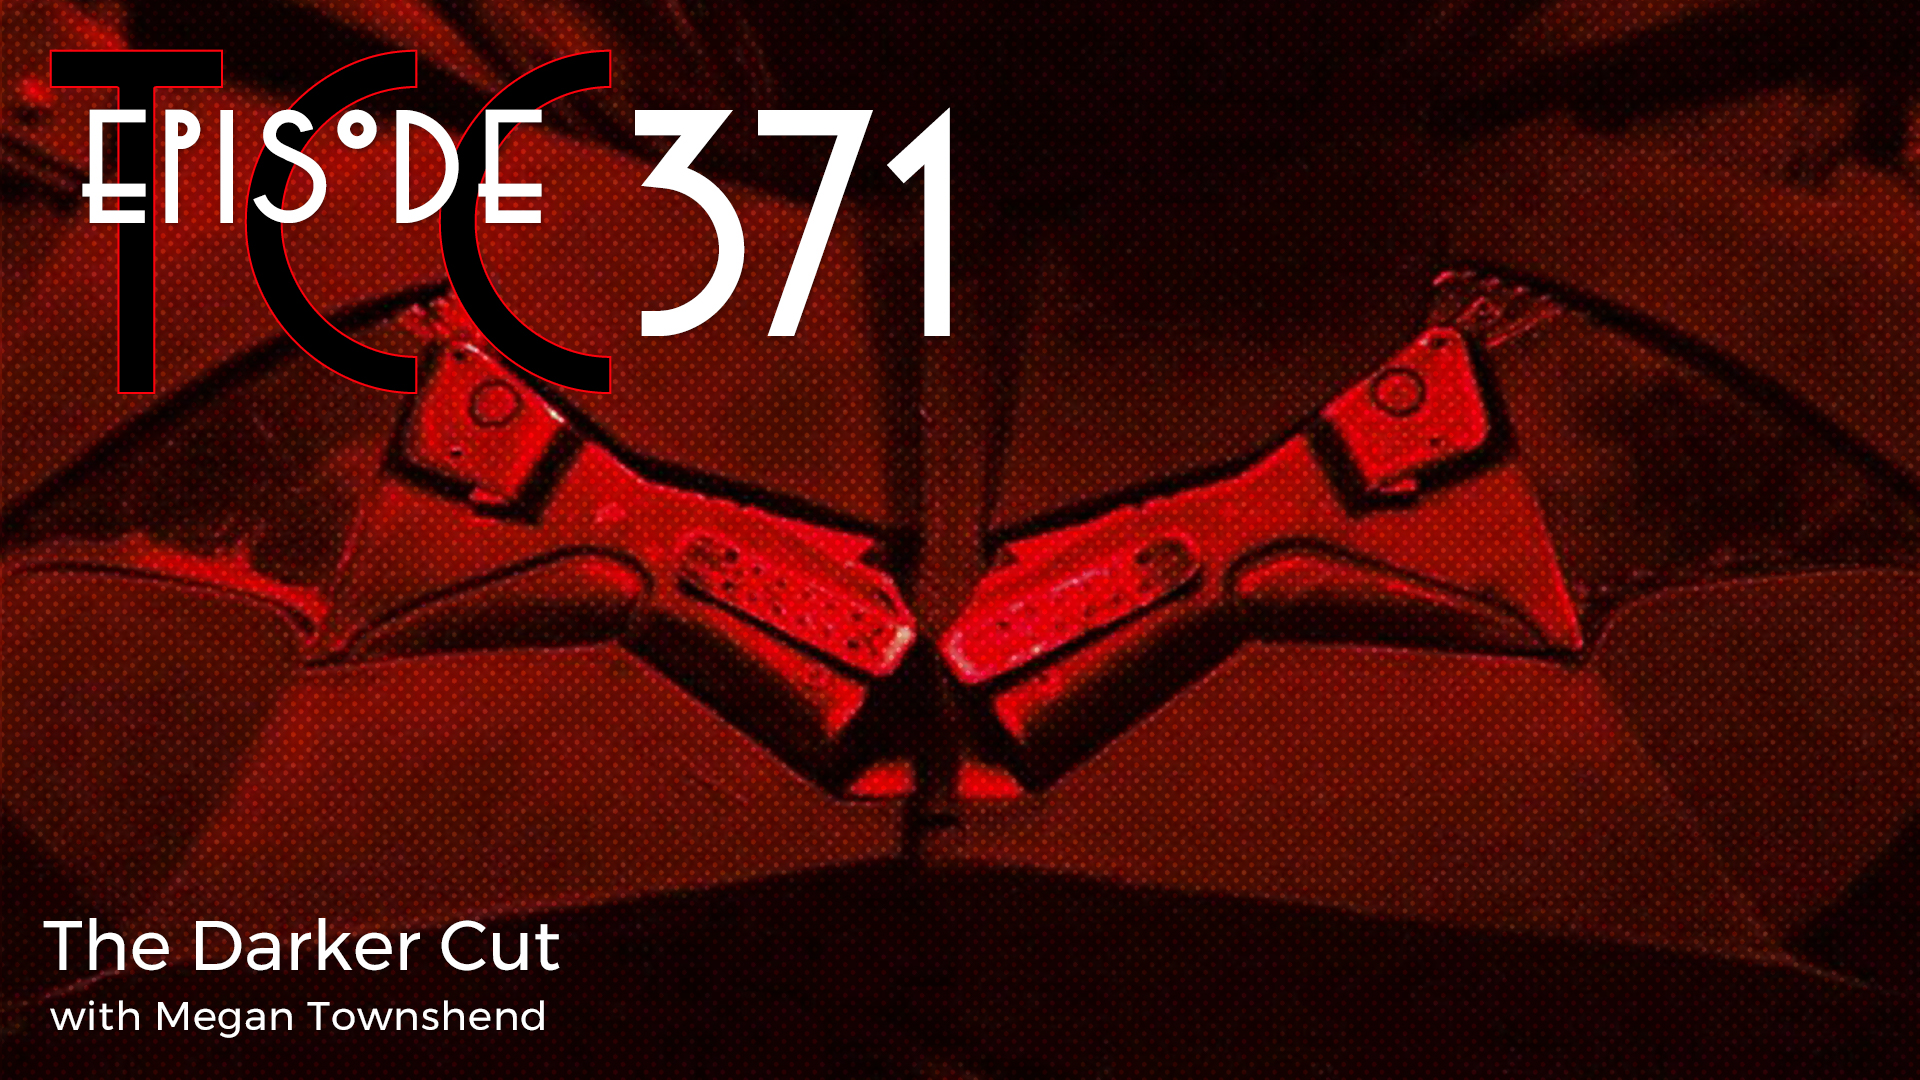 The Citadel Cafe 371: The Darker Cut